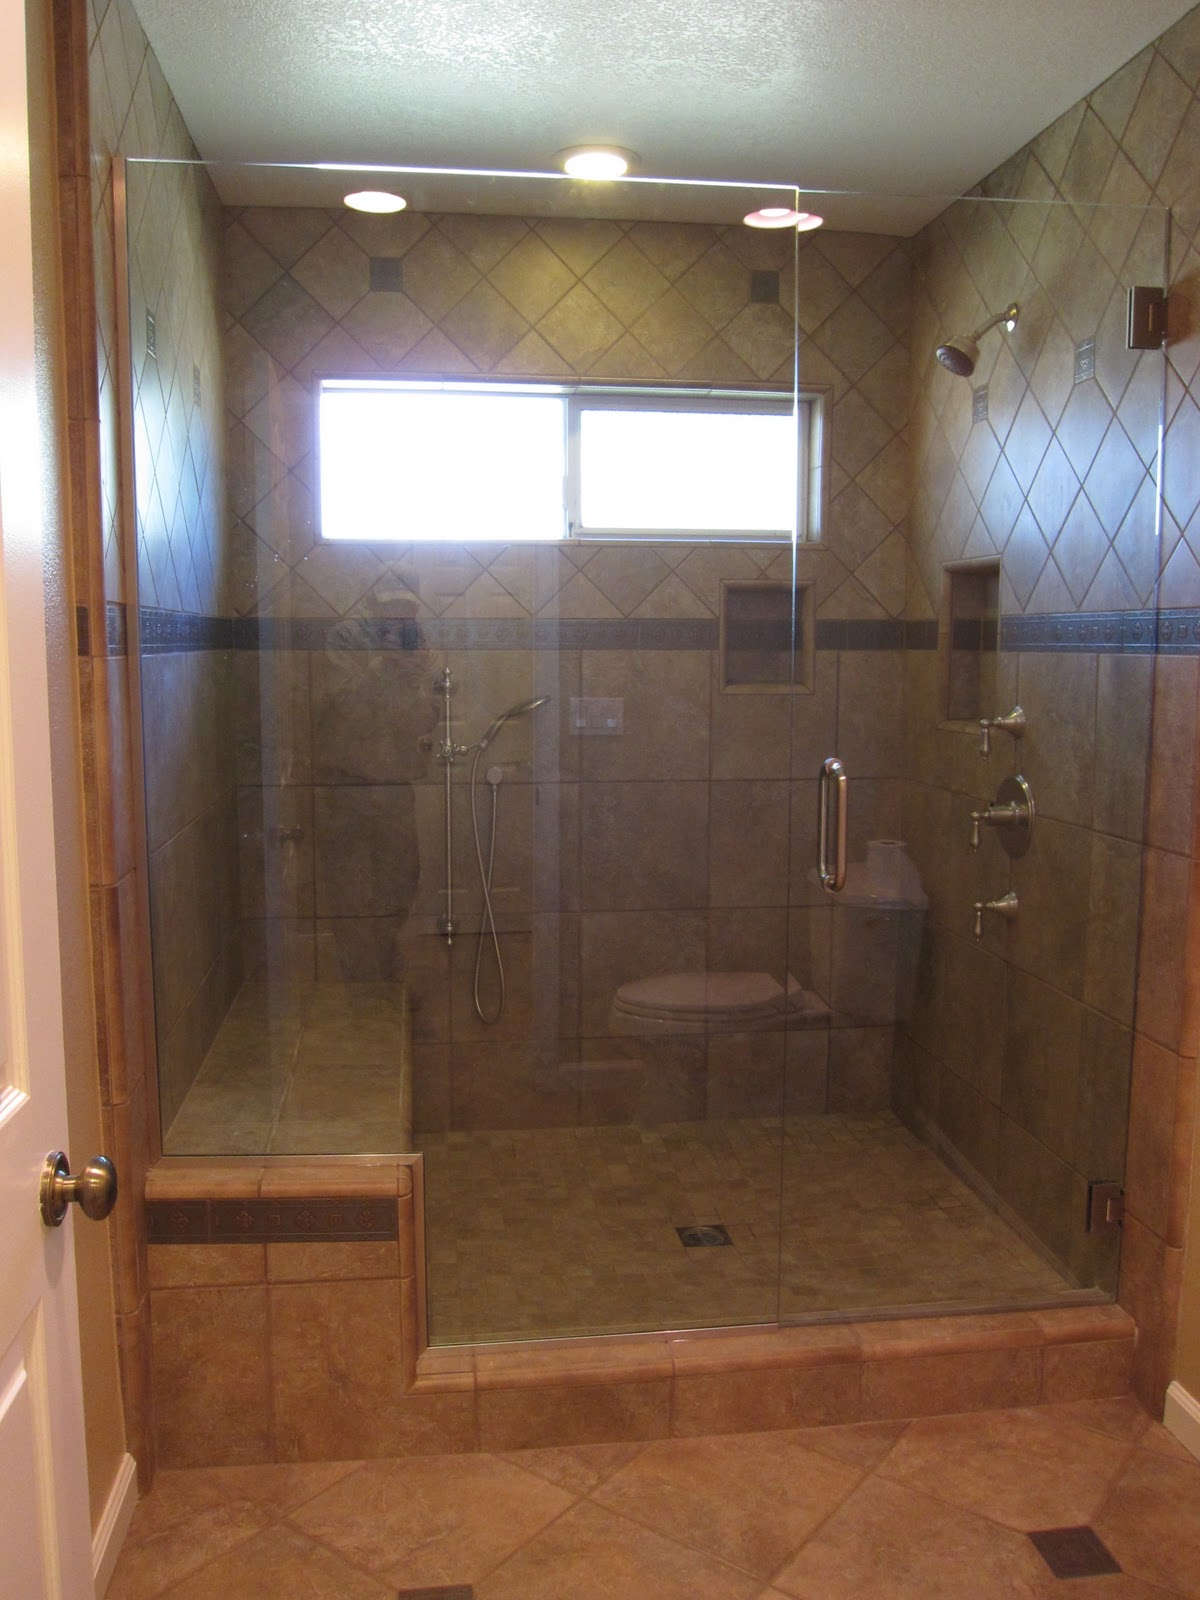 Superb Bathtub Shower Doors Tub Shower Combo And Went With A Six Foot By Five Foot  Walk